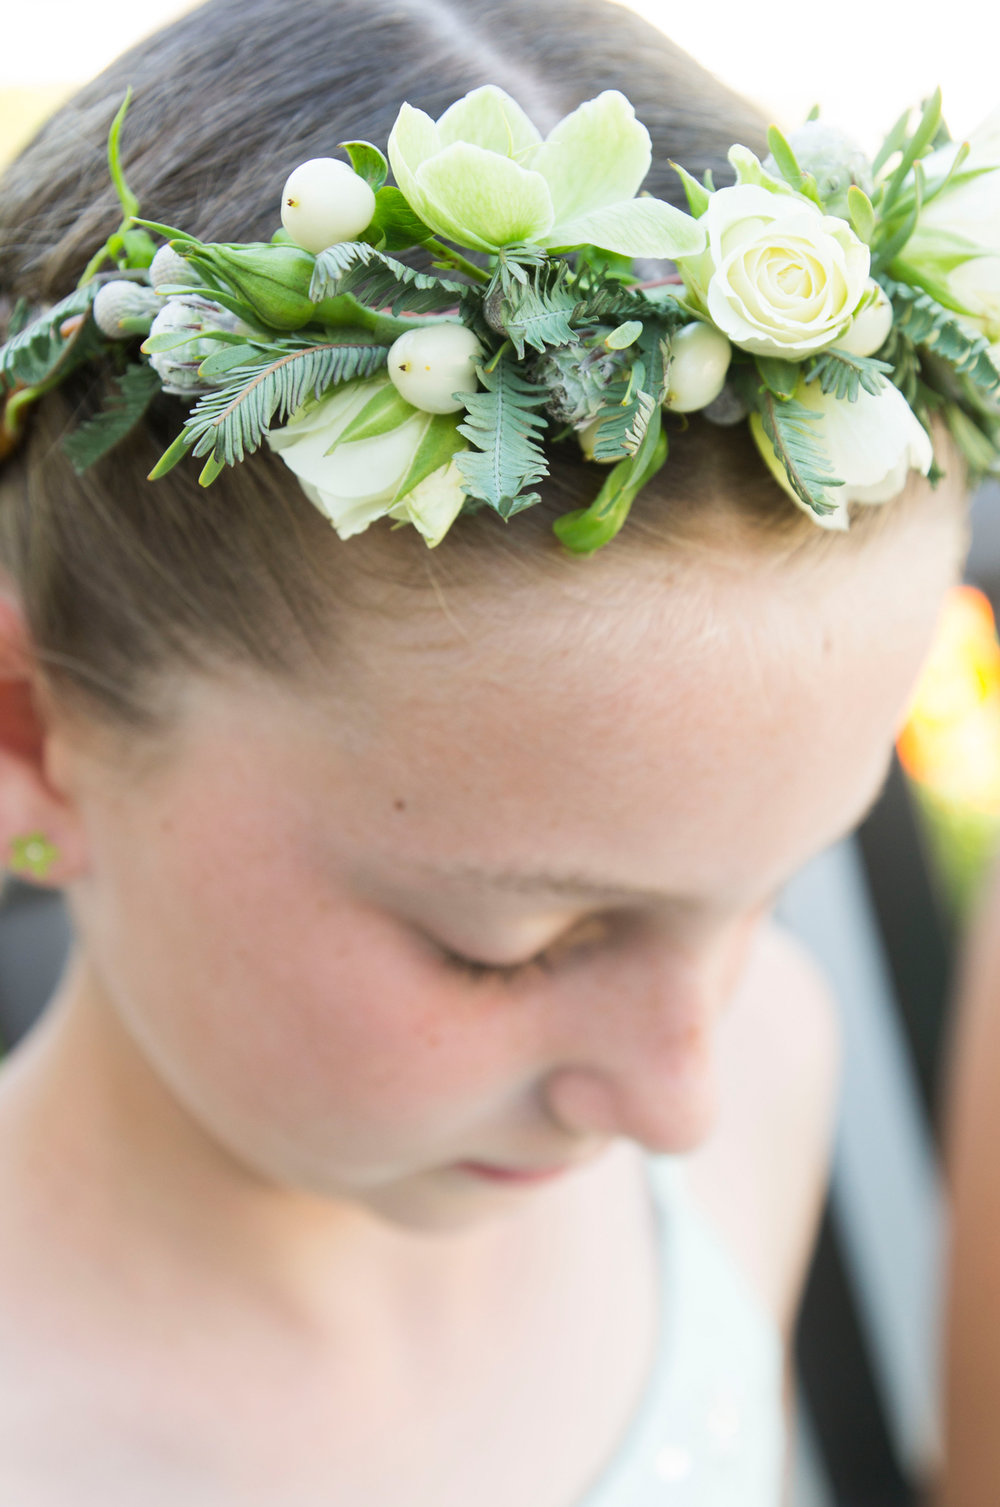 Green and White Flower Girl Flower Crown - A McCoy Equestrian Center Wedding - Peterson Design & Photography